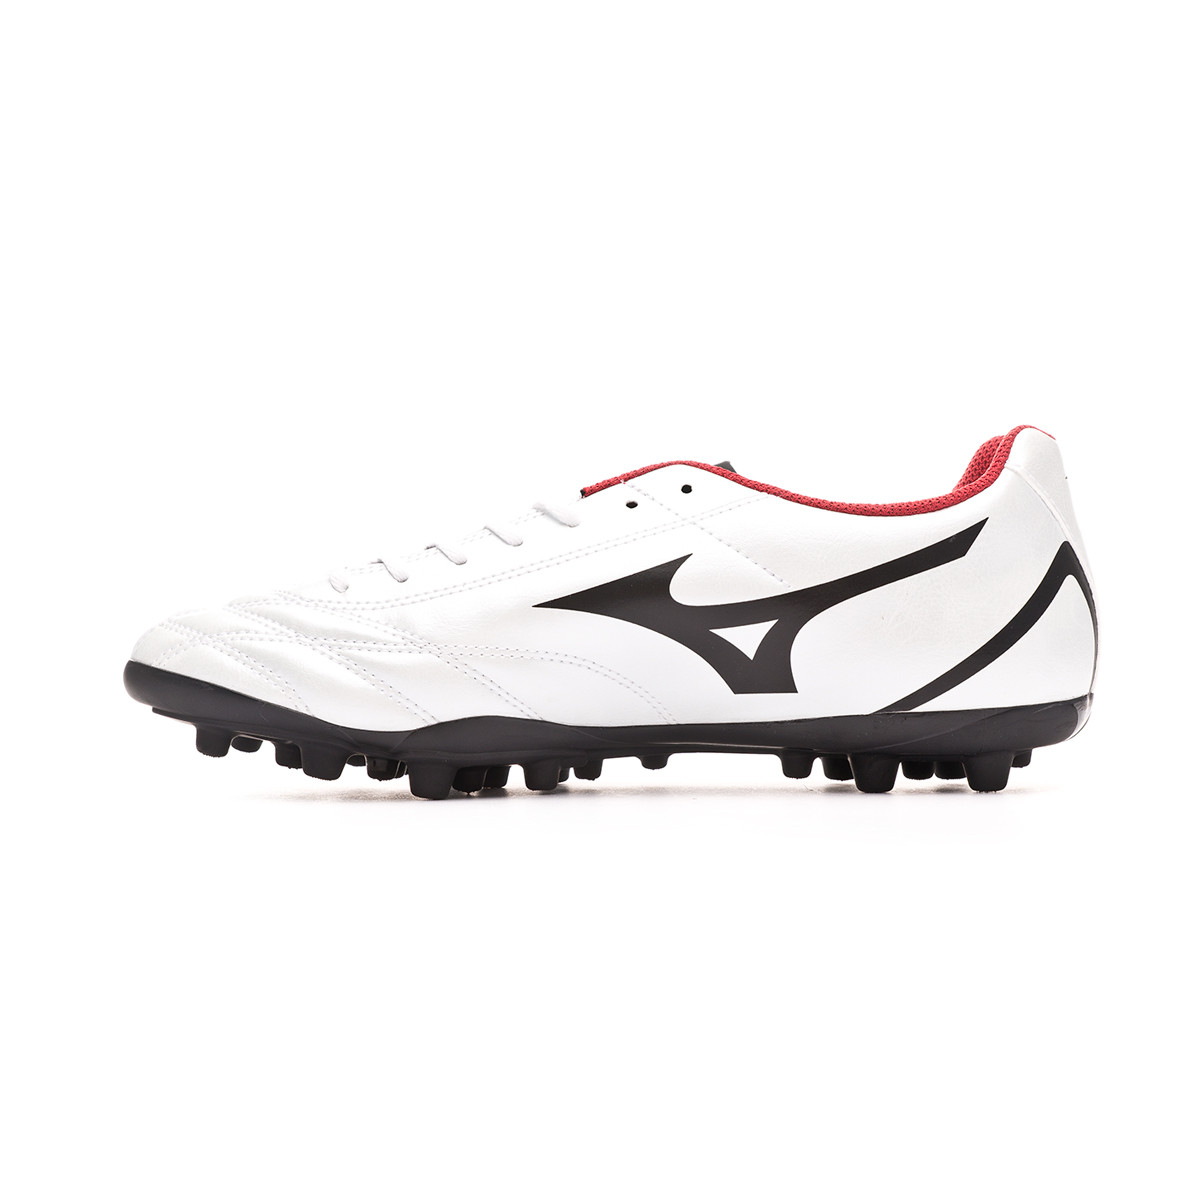 mizuno indoor soccer shoes usa en espa�ol ingles jordan online